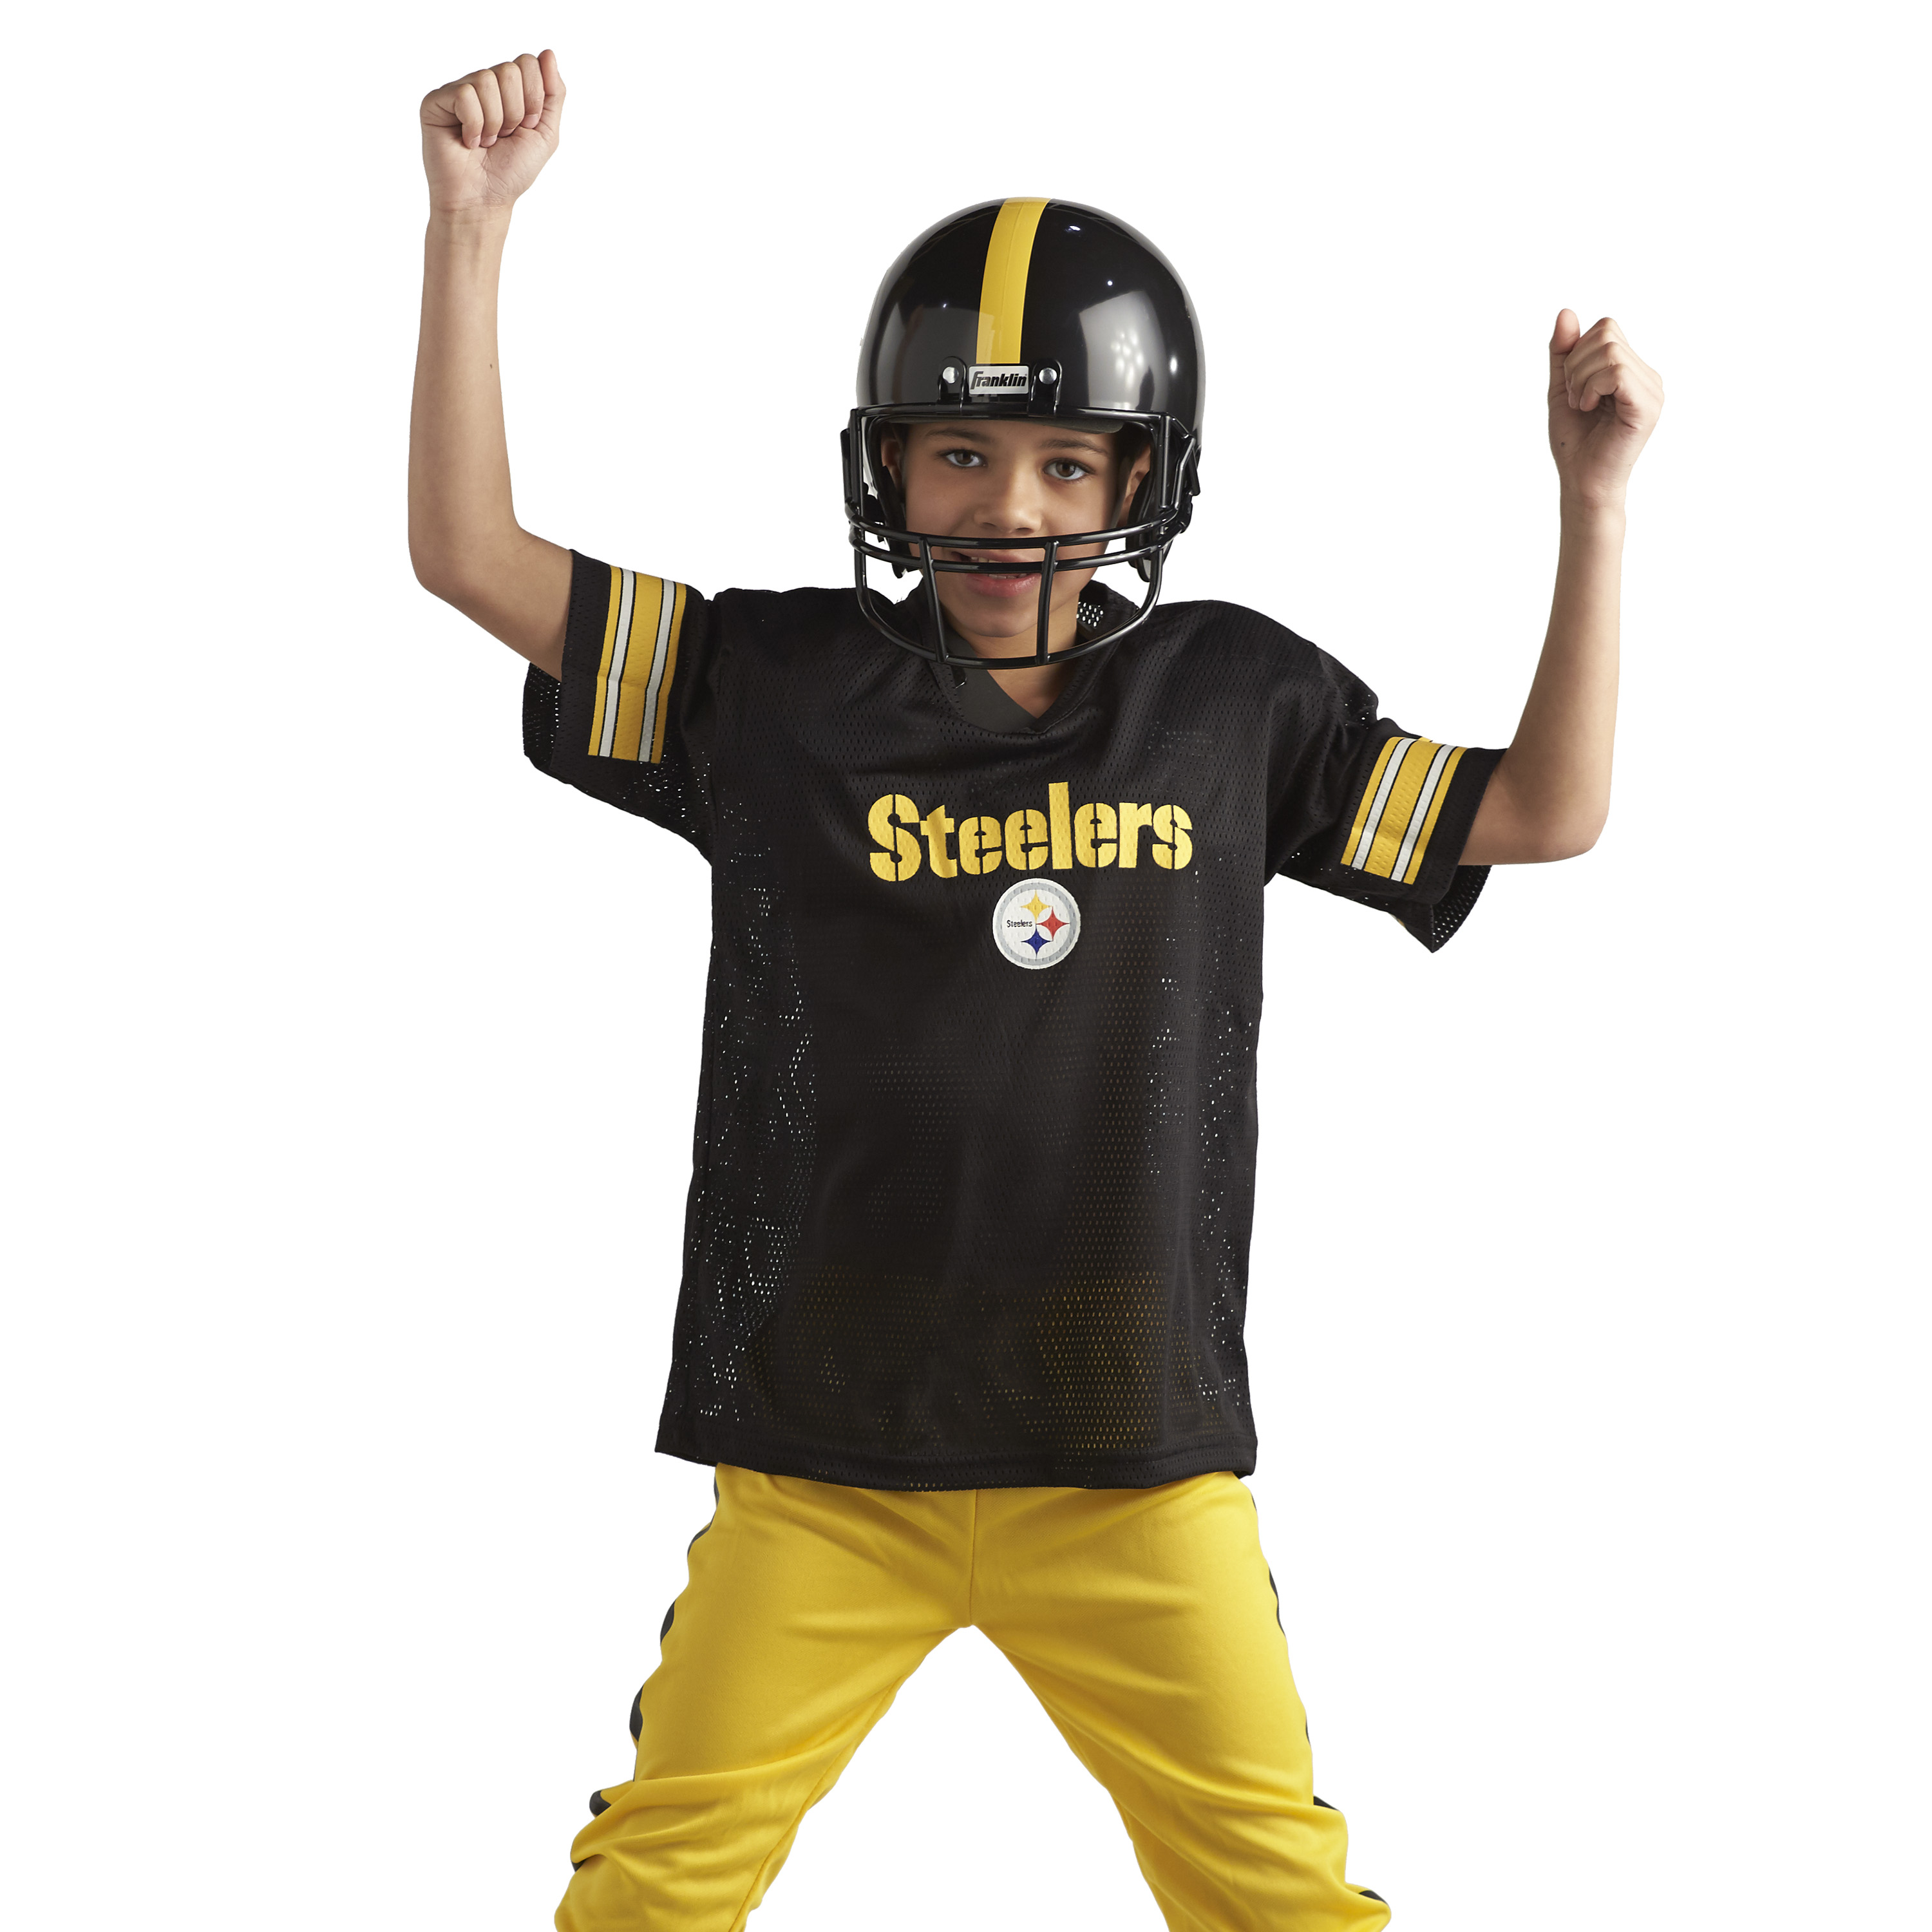 Franklin Sports NFL Youth Deluxe Uniform Costume Football Set (Choose Team  and Size) - Walmart.com 017513a3c